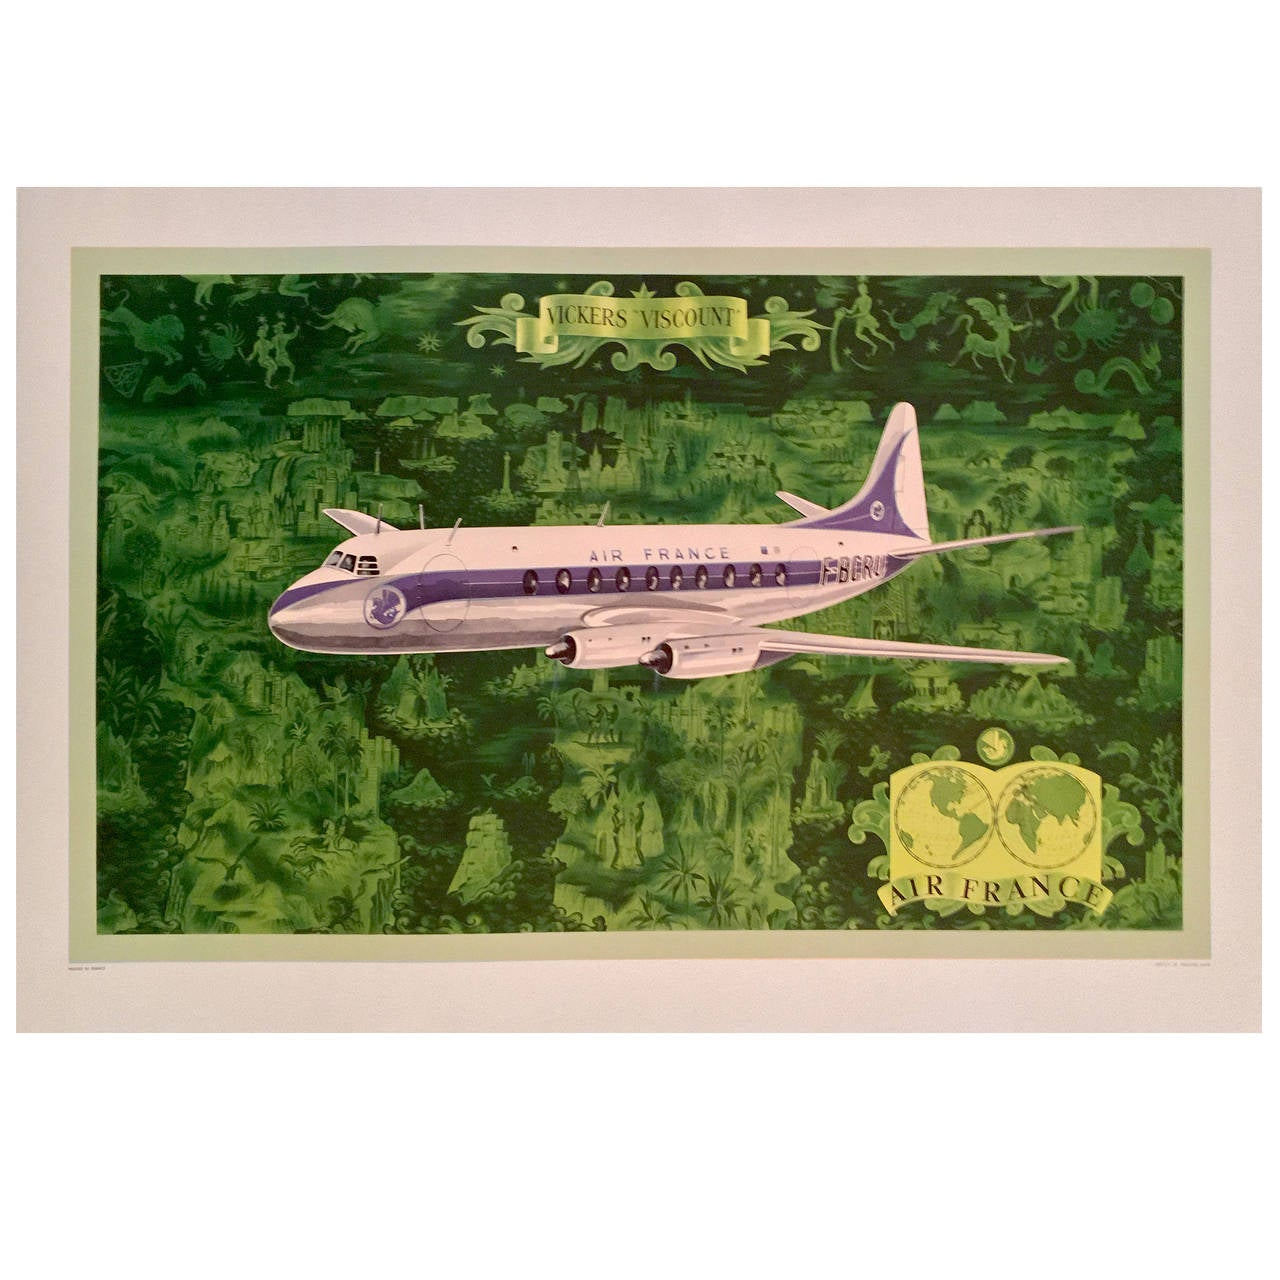 Mid century modern period air france travel poster for Mid modern period